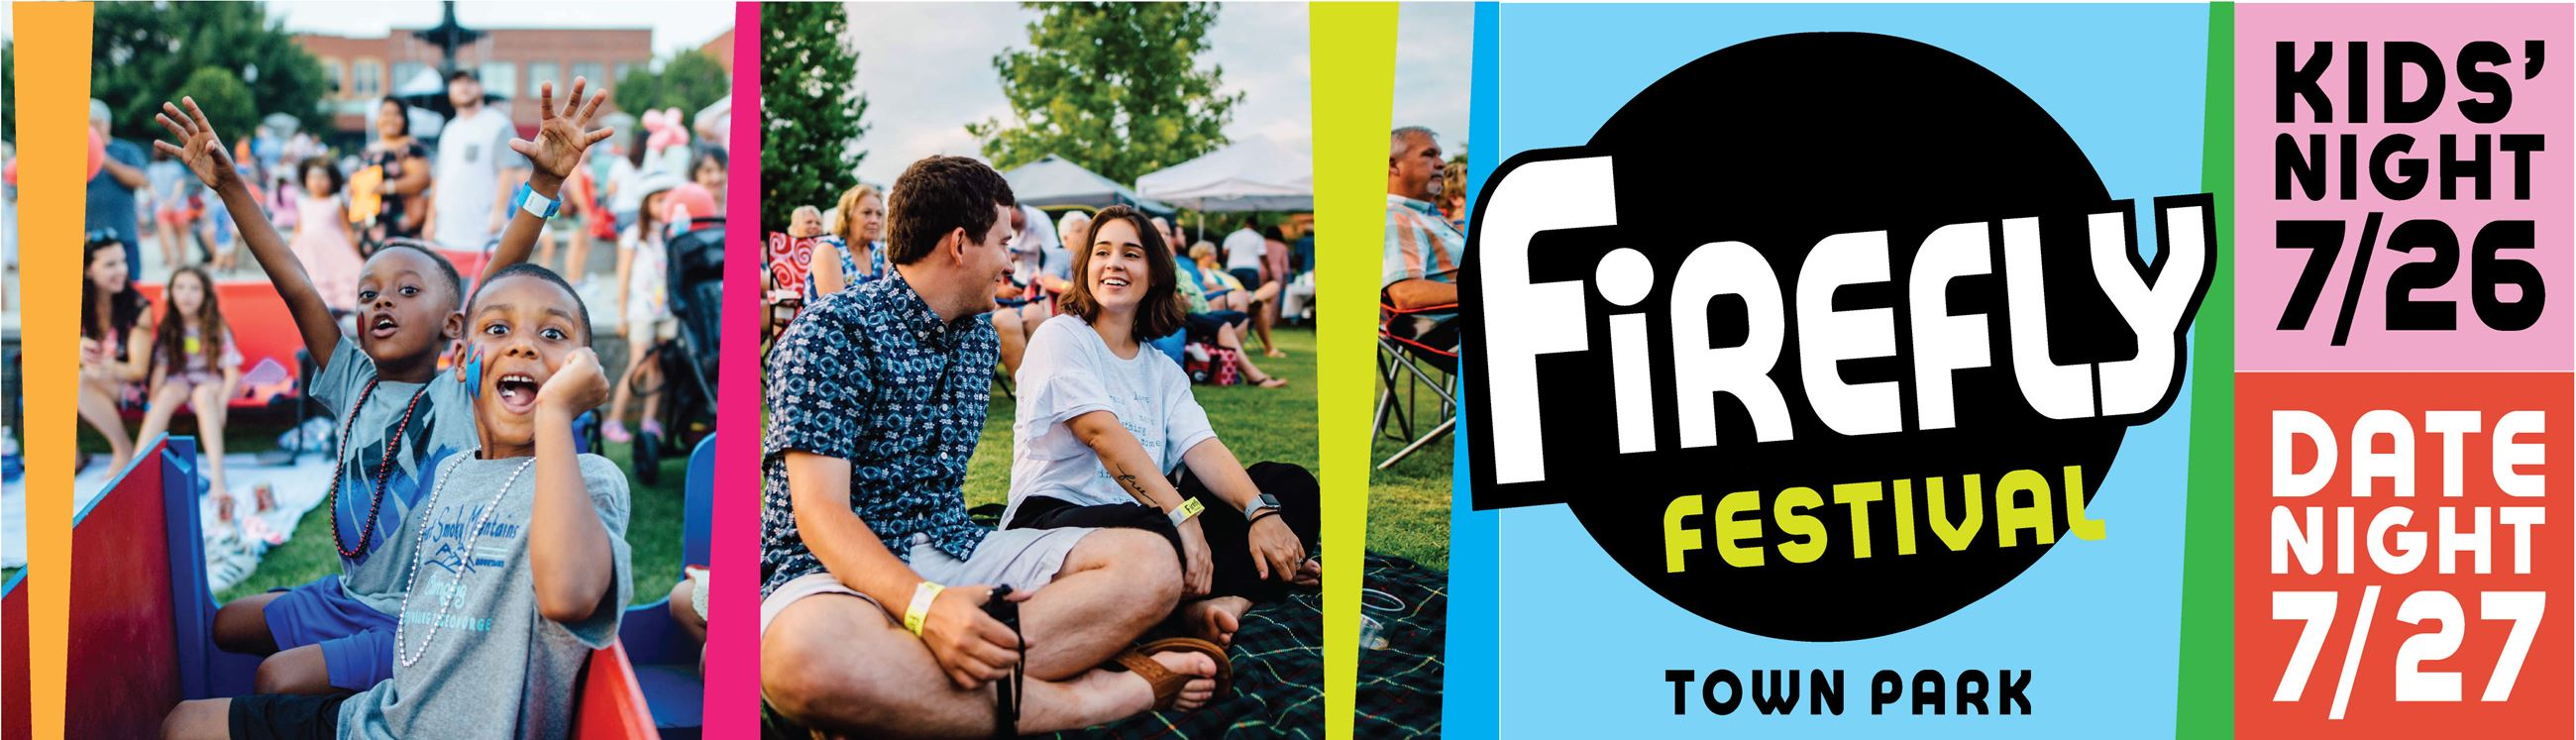 Kids and adults at the Firefly Festival